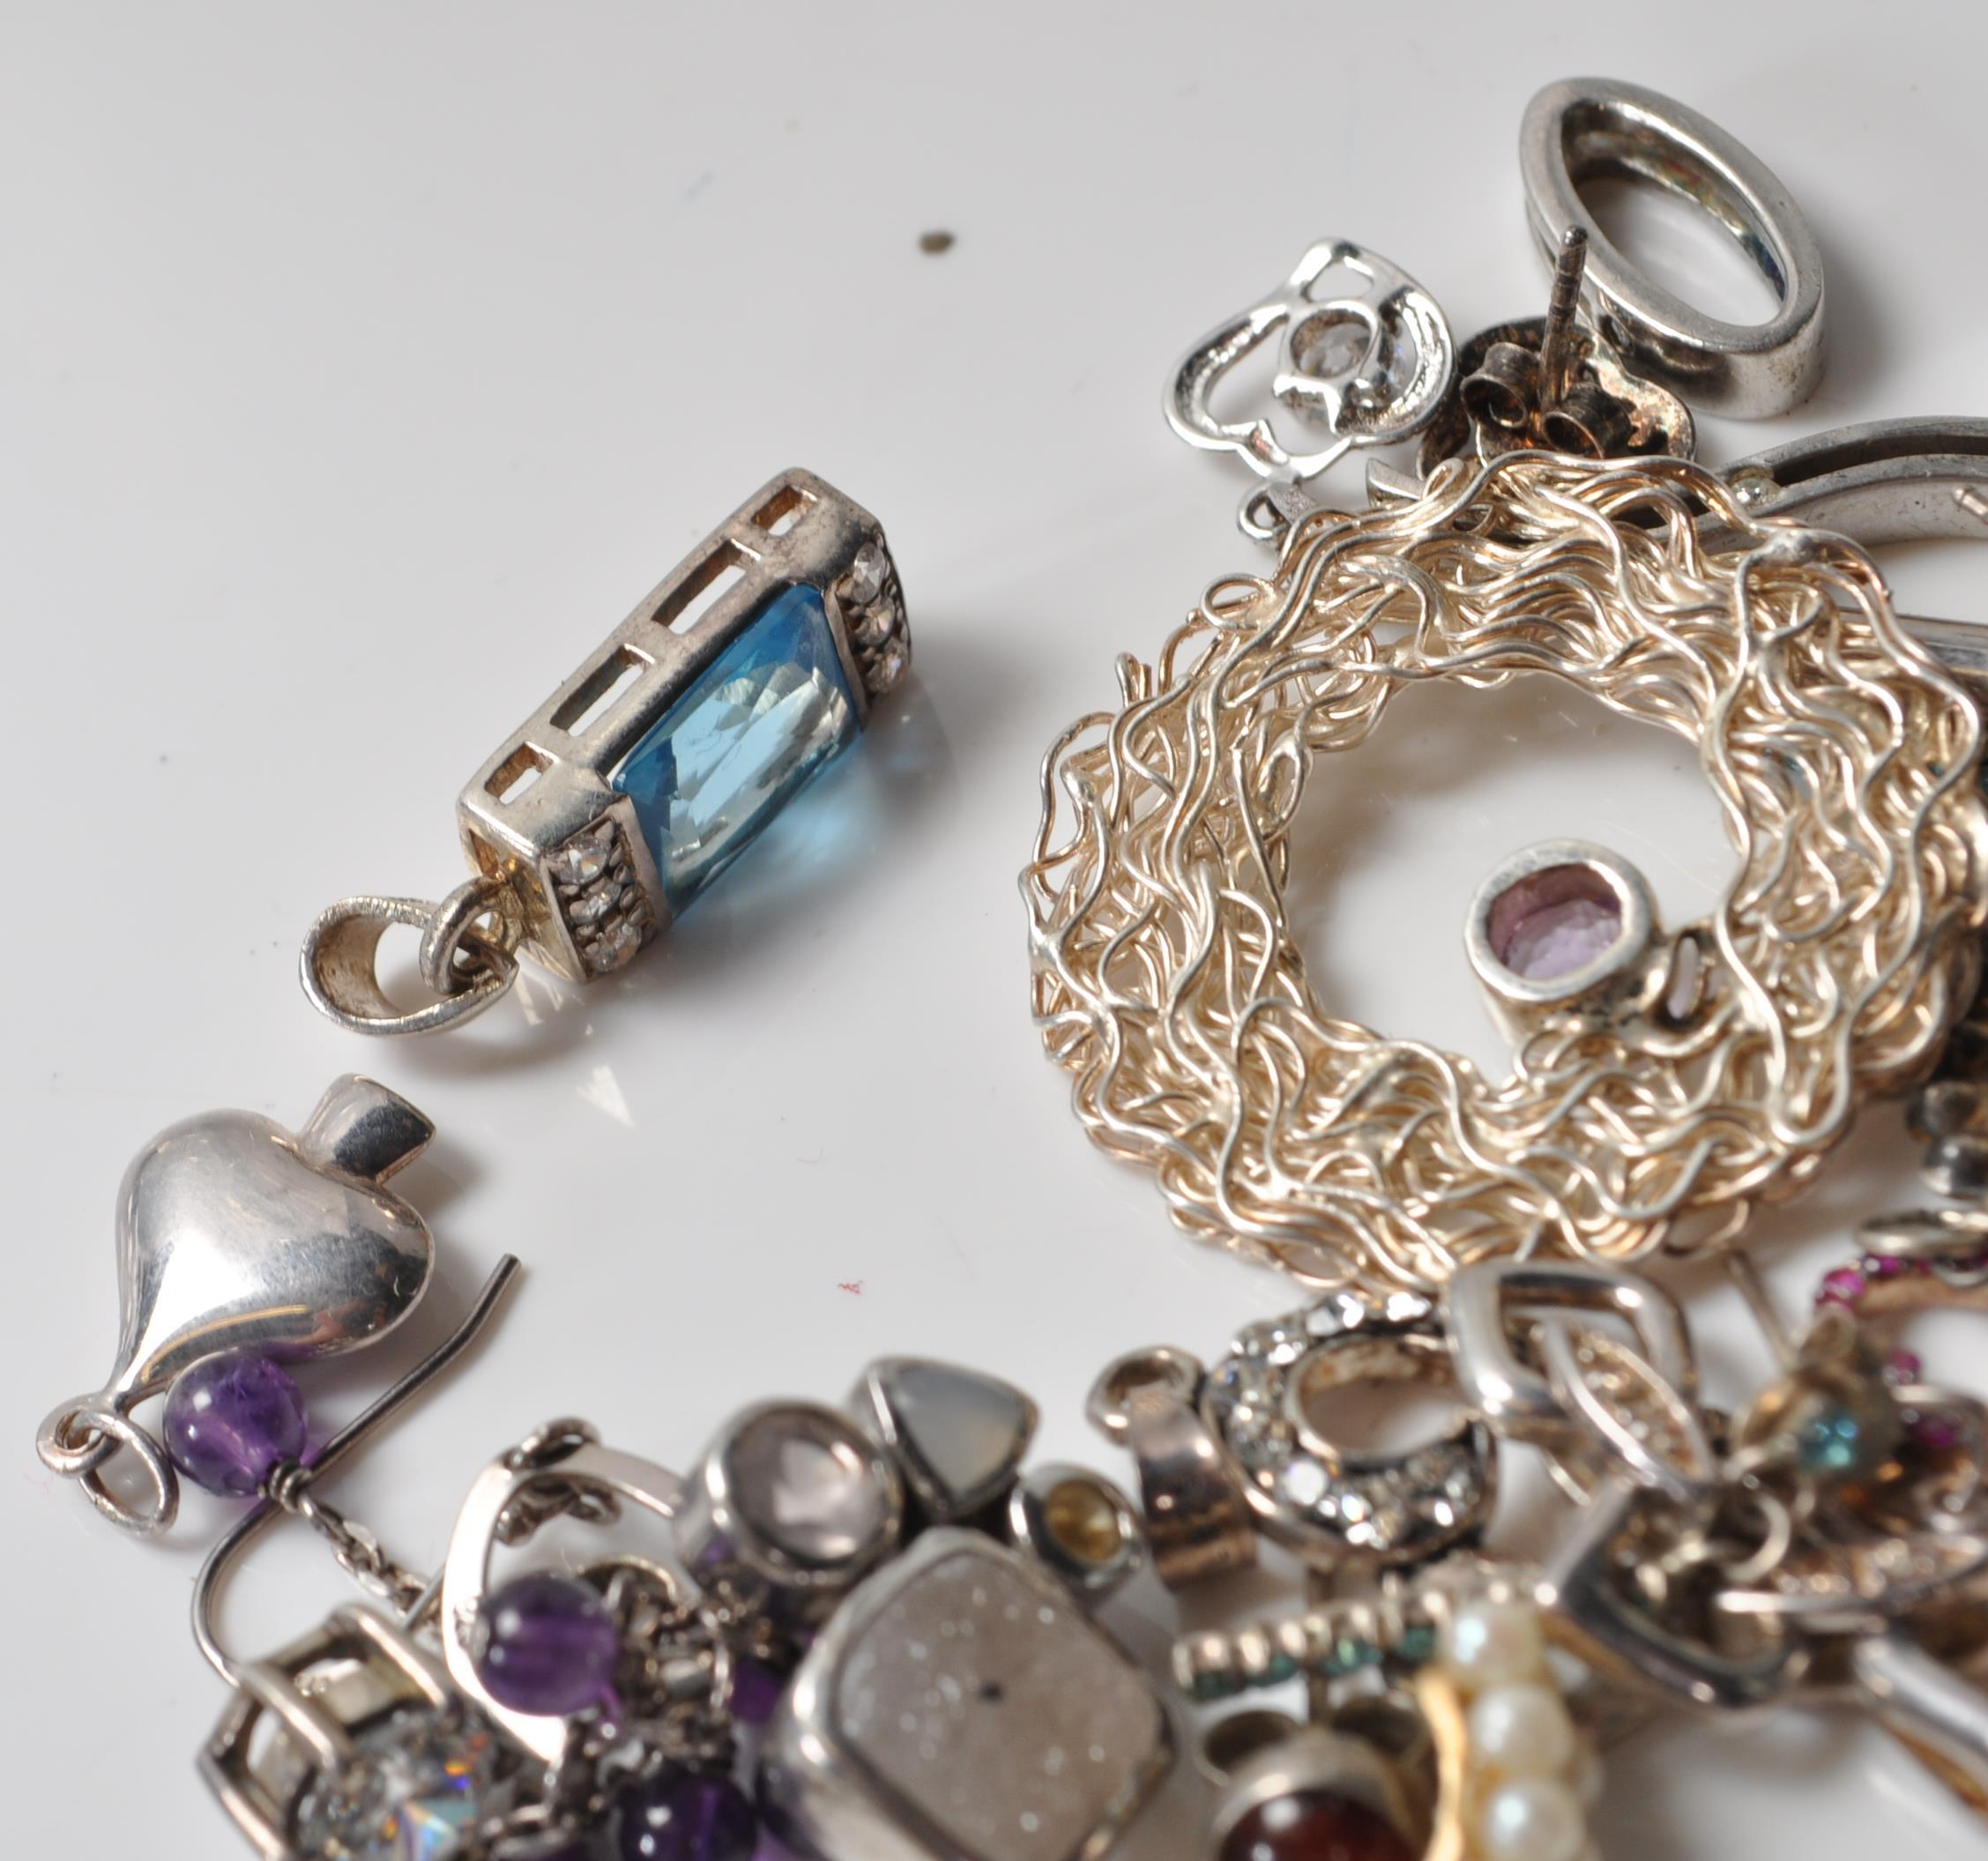 COLLECTION OF SILVER STAMPED 925 EARRINGS AND PENDANTS. - Image 3 of 5